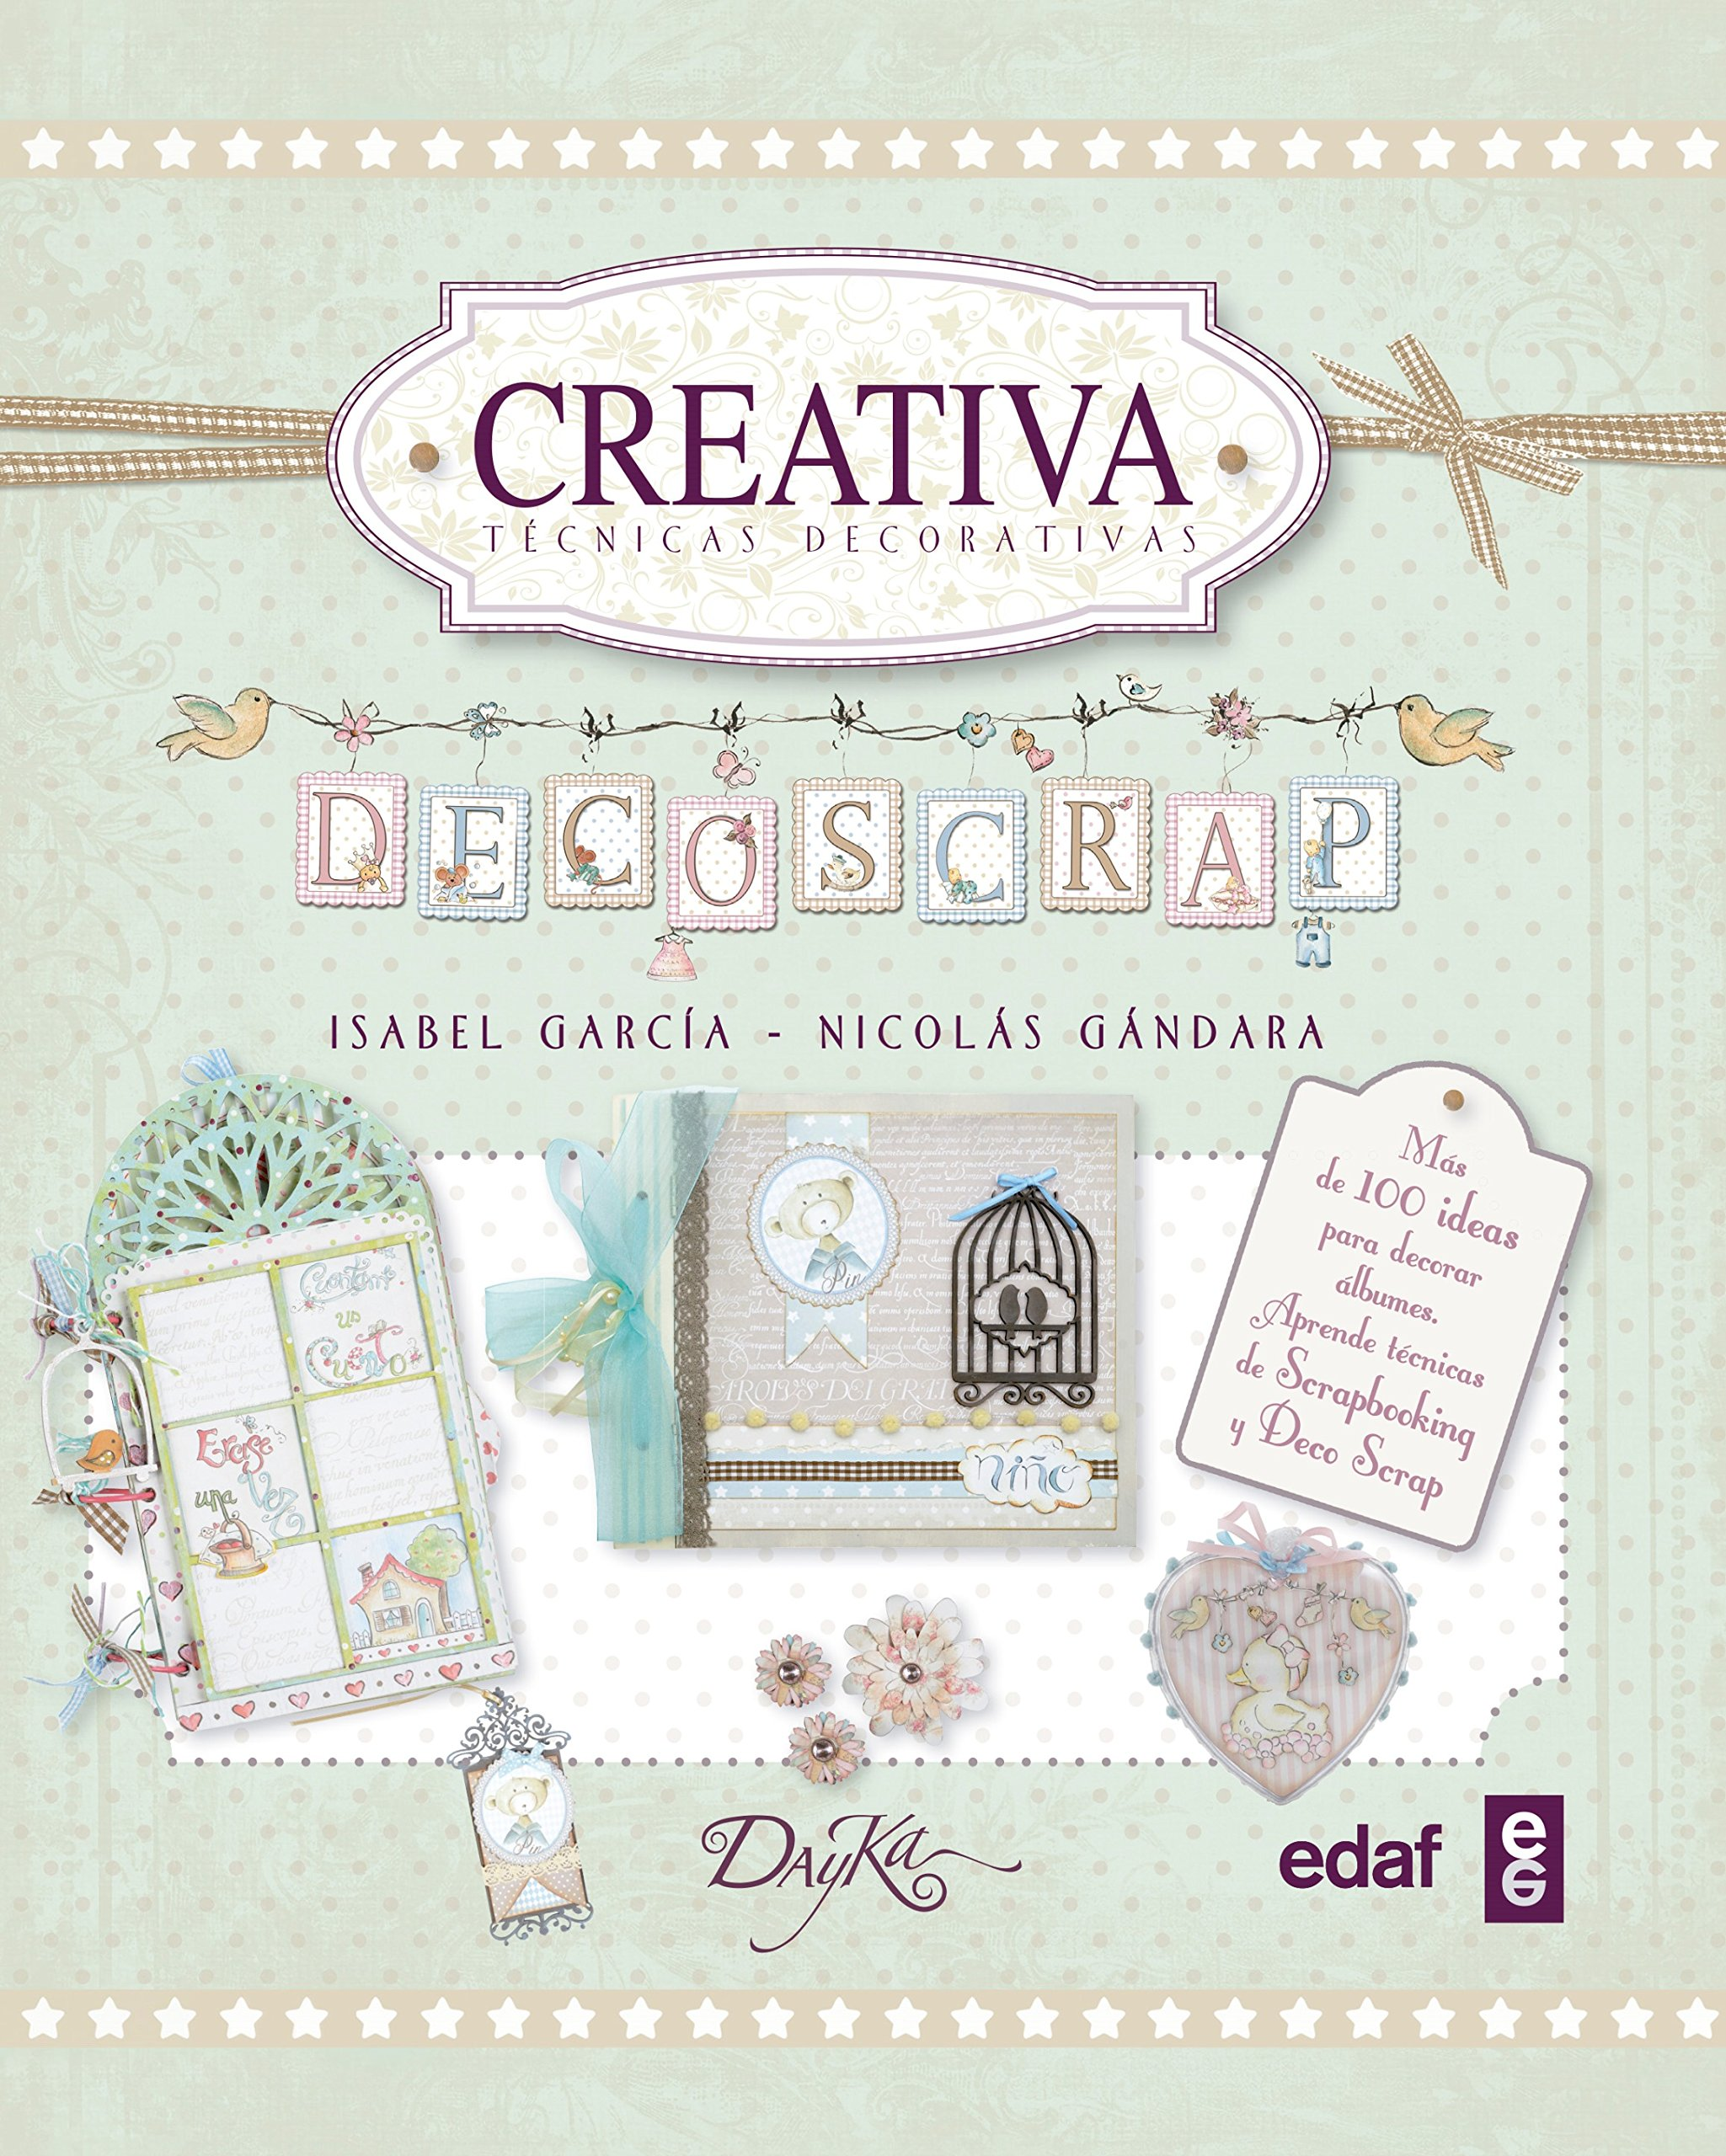 Decoscrap (Spanish Edition) (Spanish) Paperback – September 30, 2014